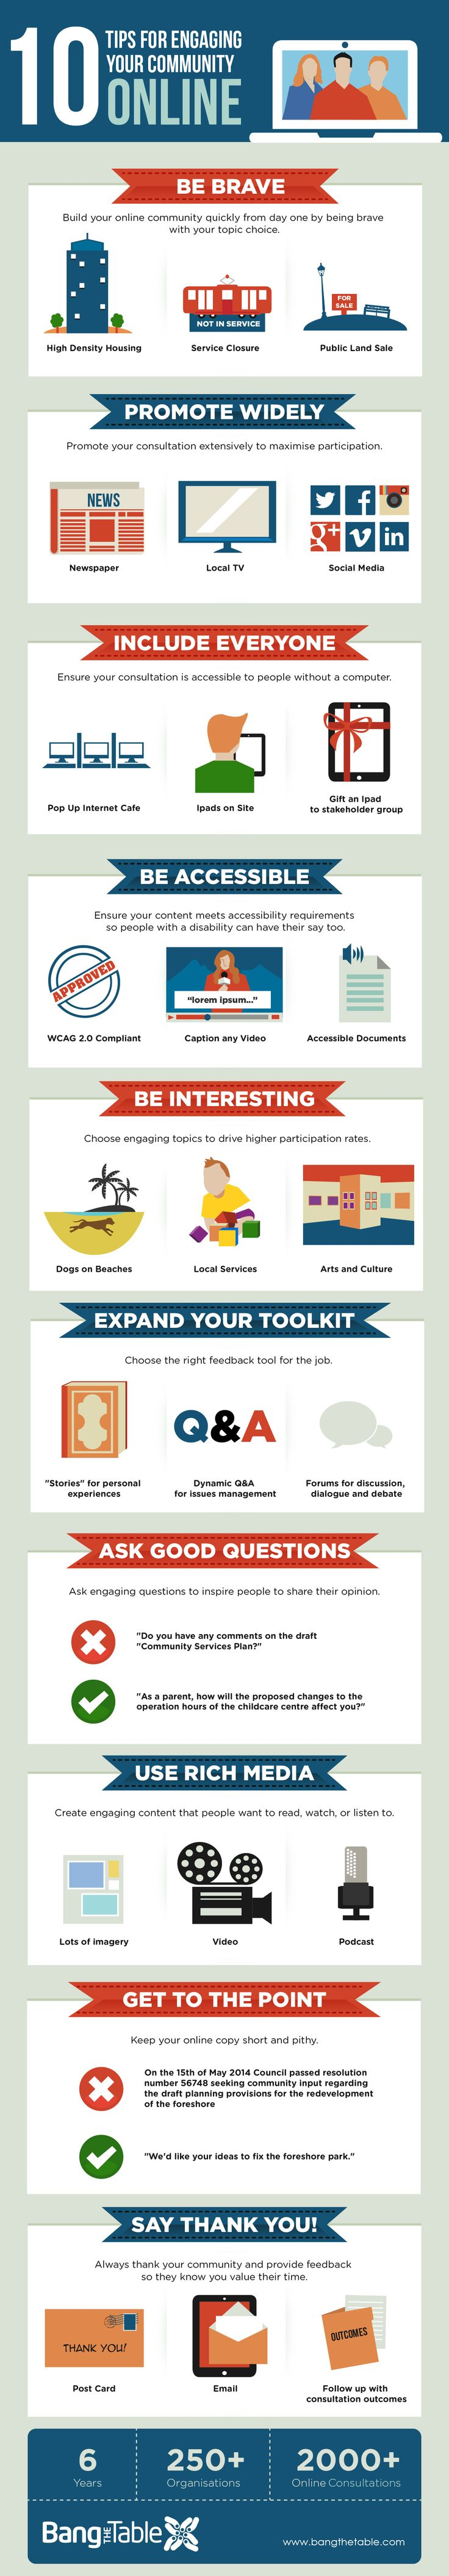 Ten tips for online citizen participation – an Infographic - Via Bang the Table